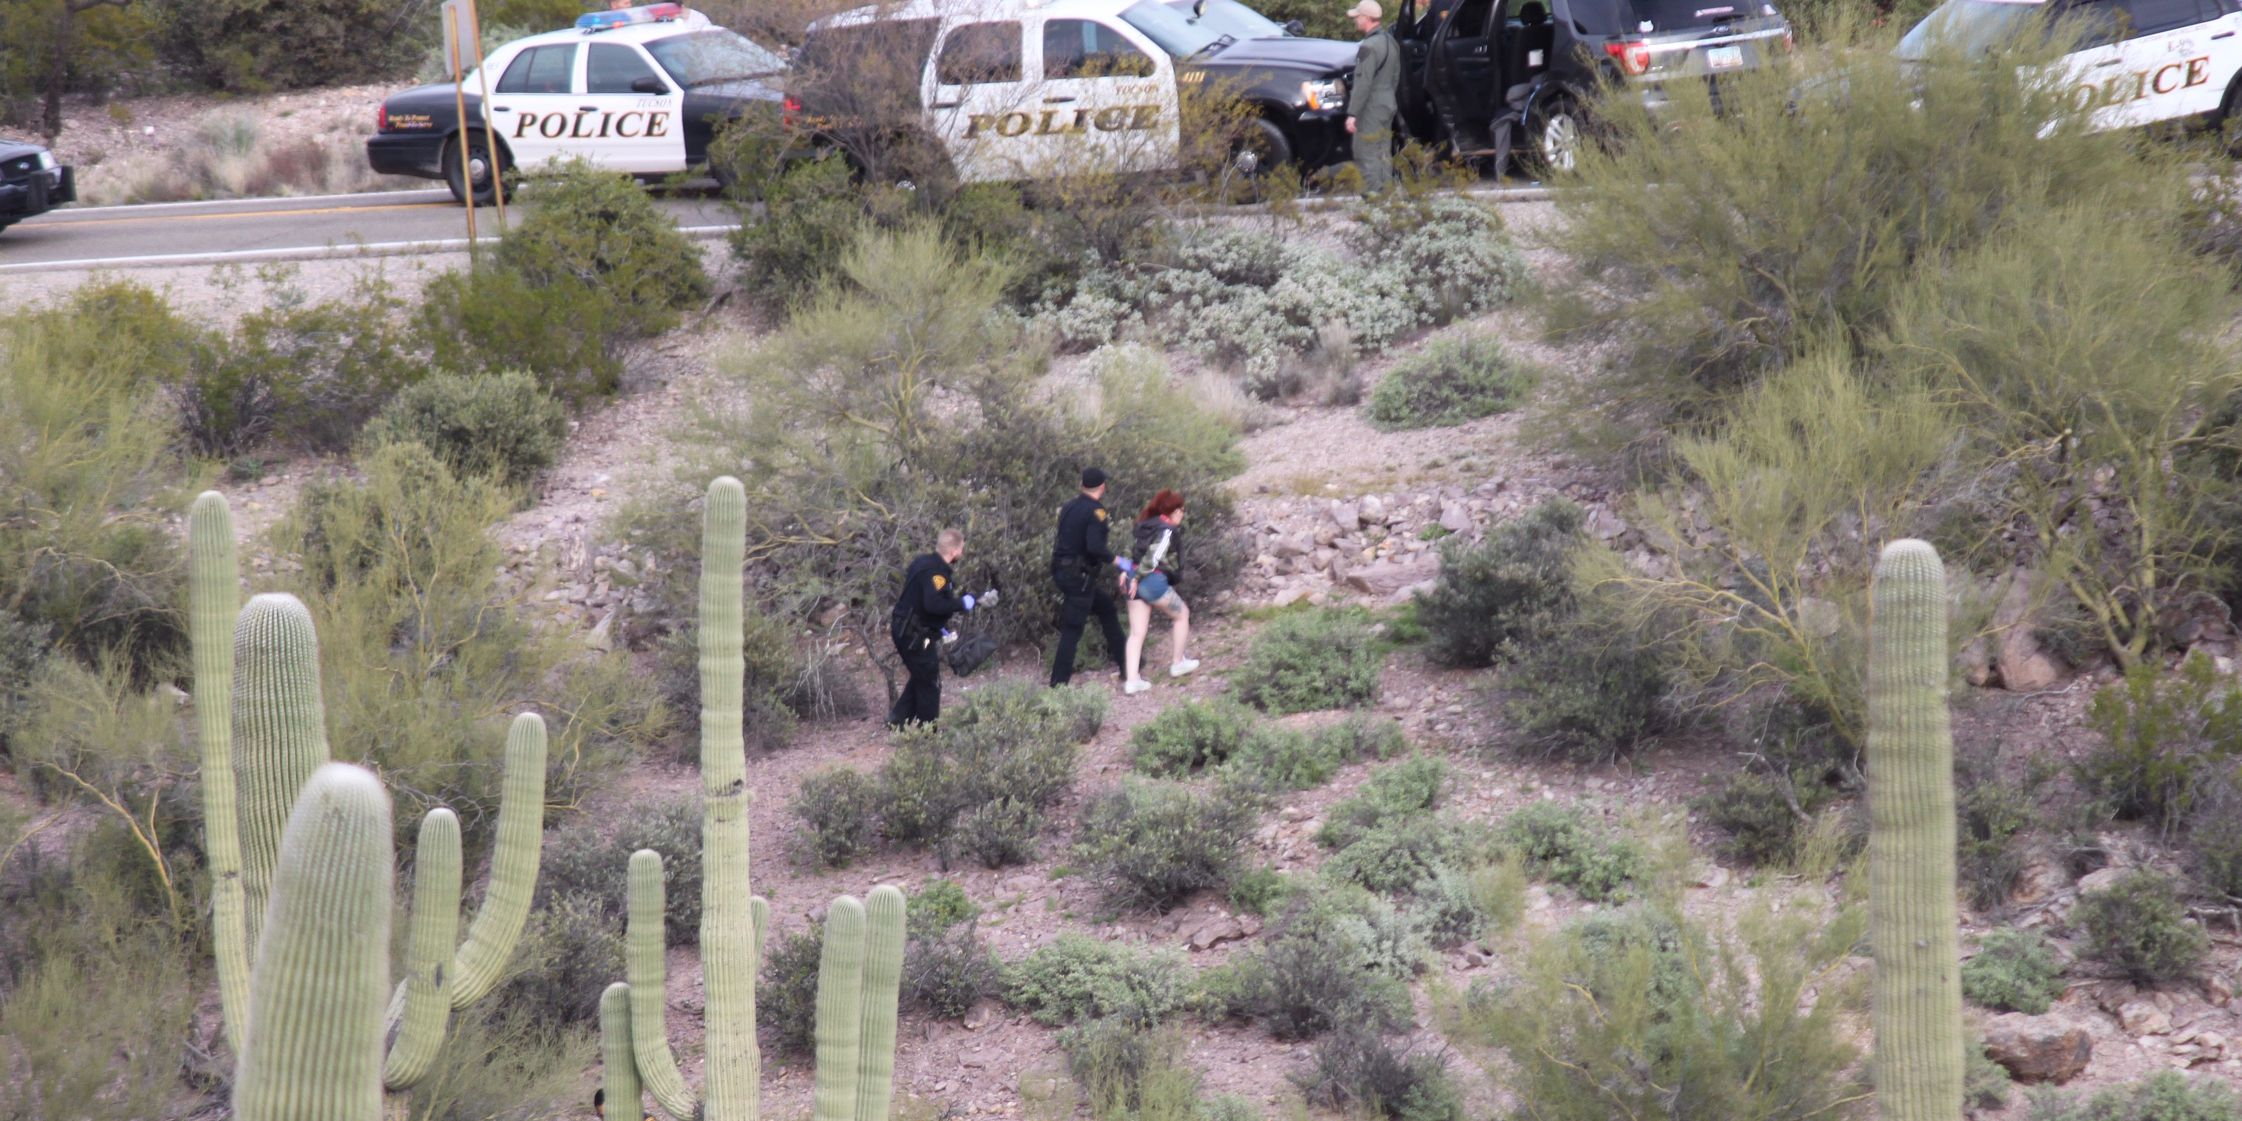 WATCH: Armed robbery suspects arrested after chase in Tucson